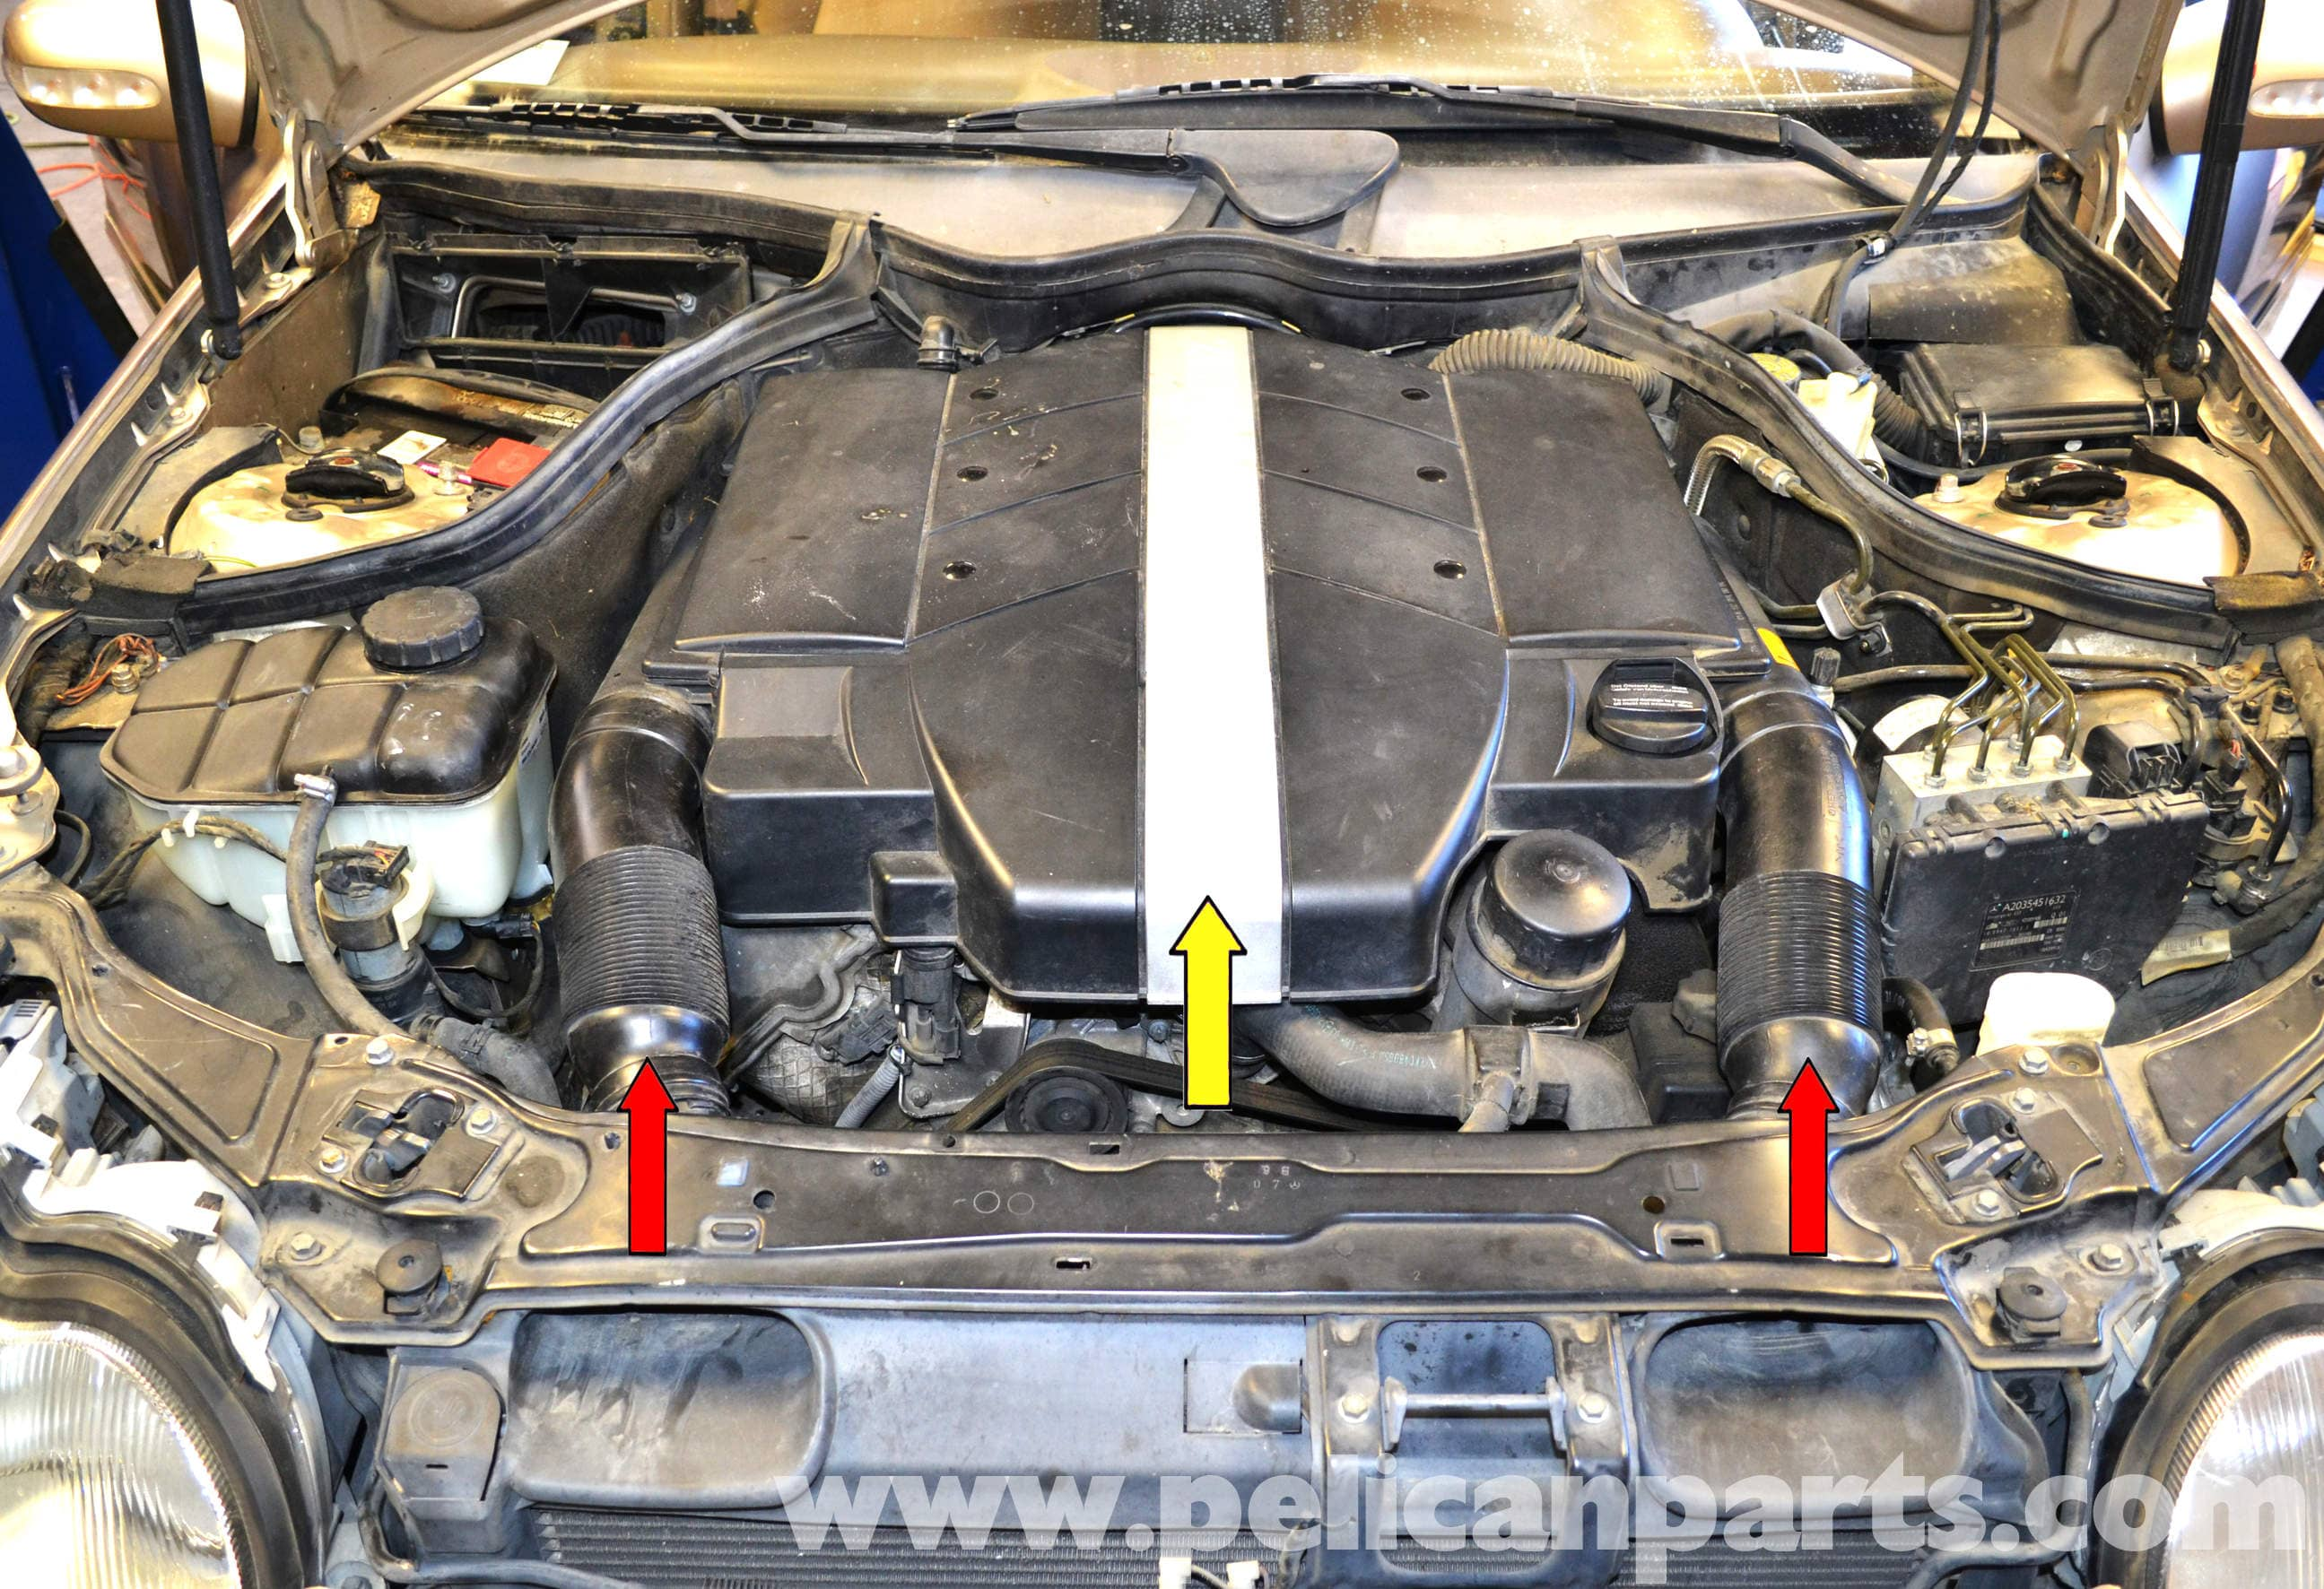 mercedes-benz w203 radiator replacement